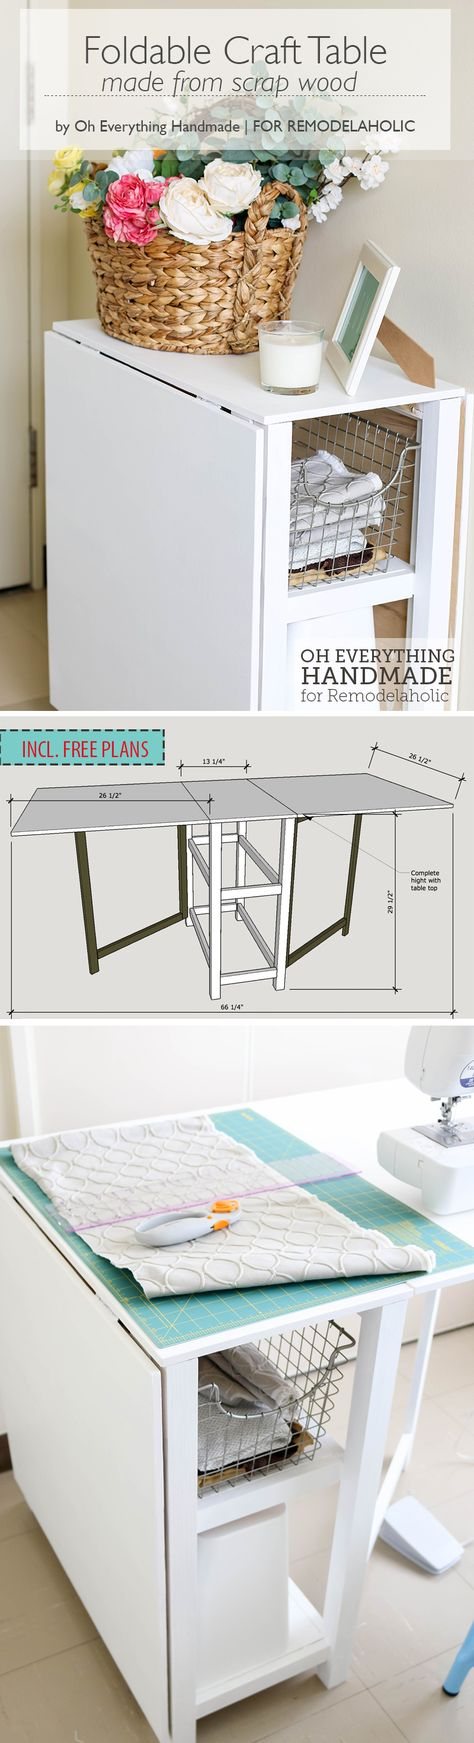 Sewing table extension 53+ Ideas